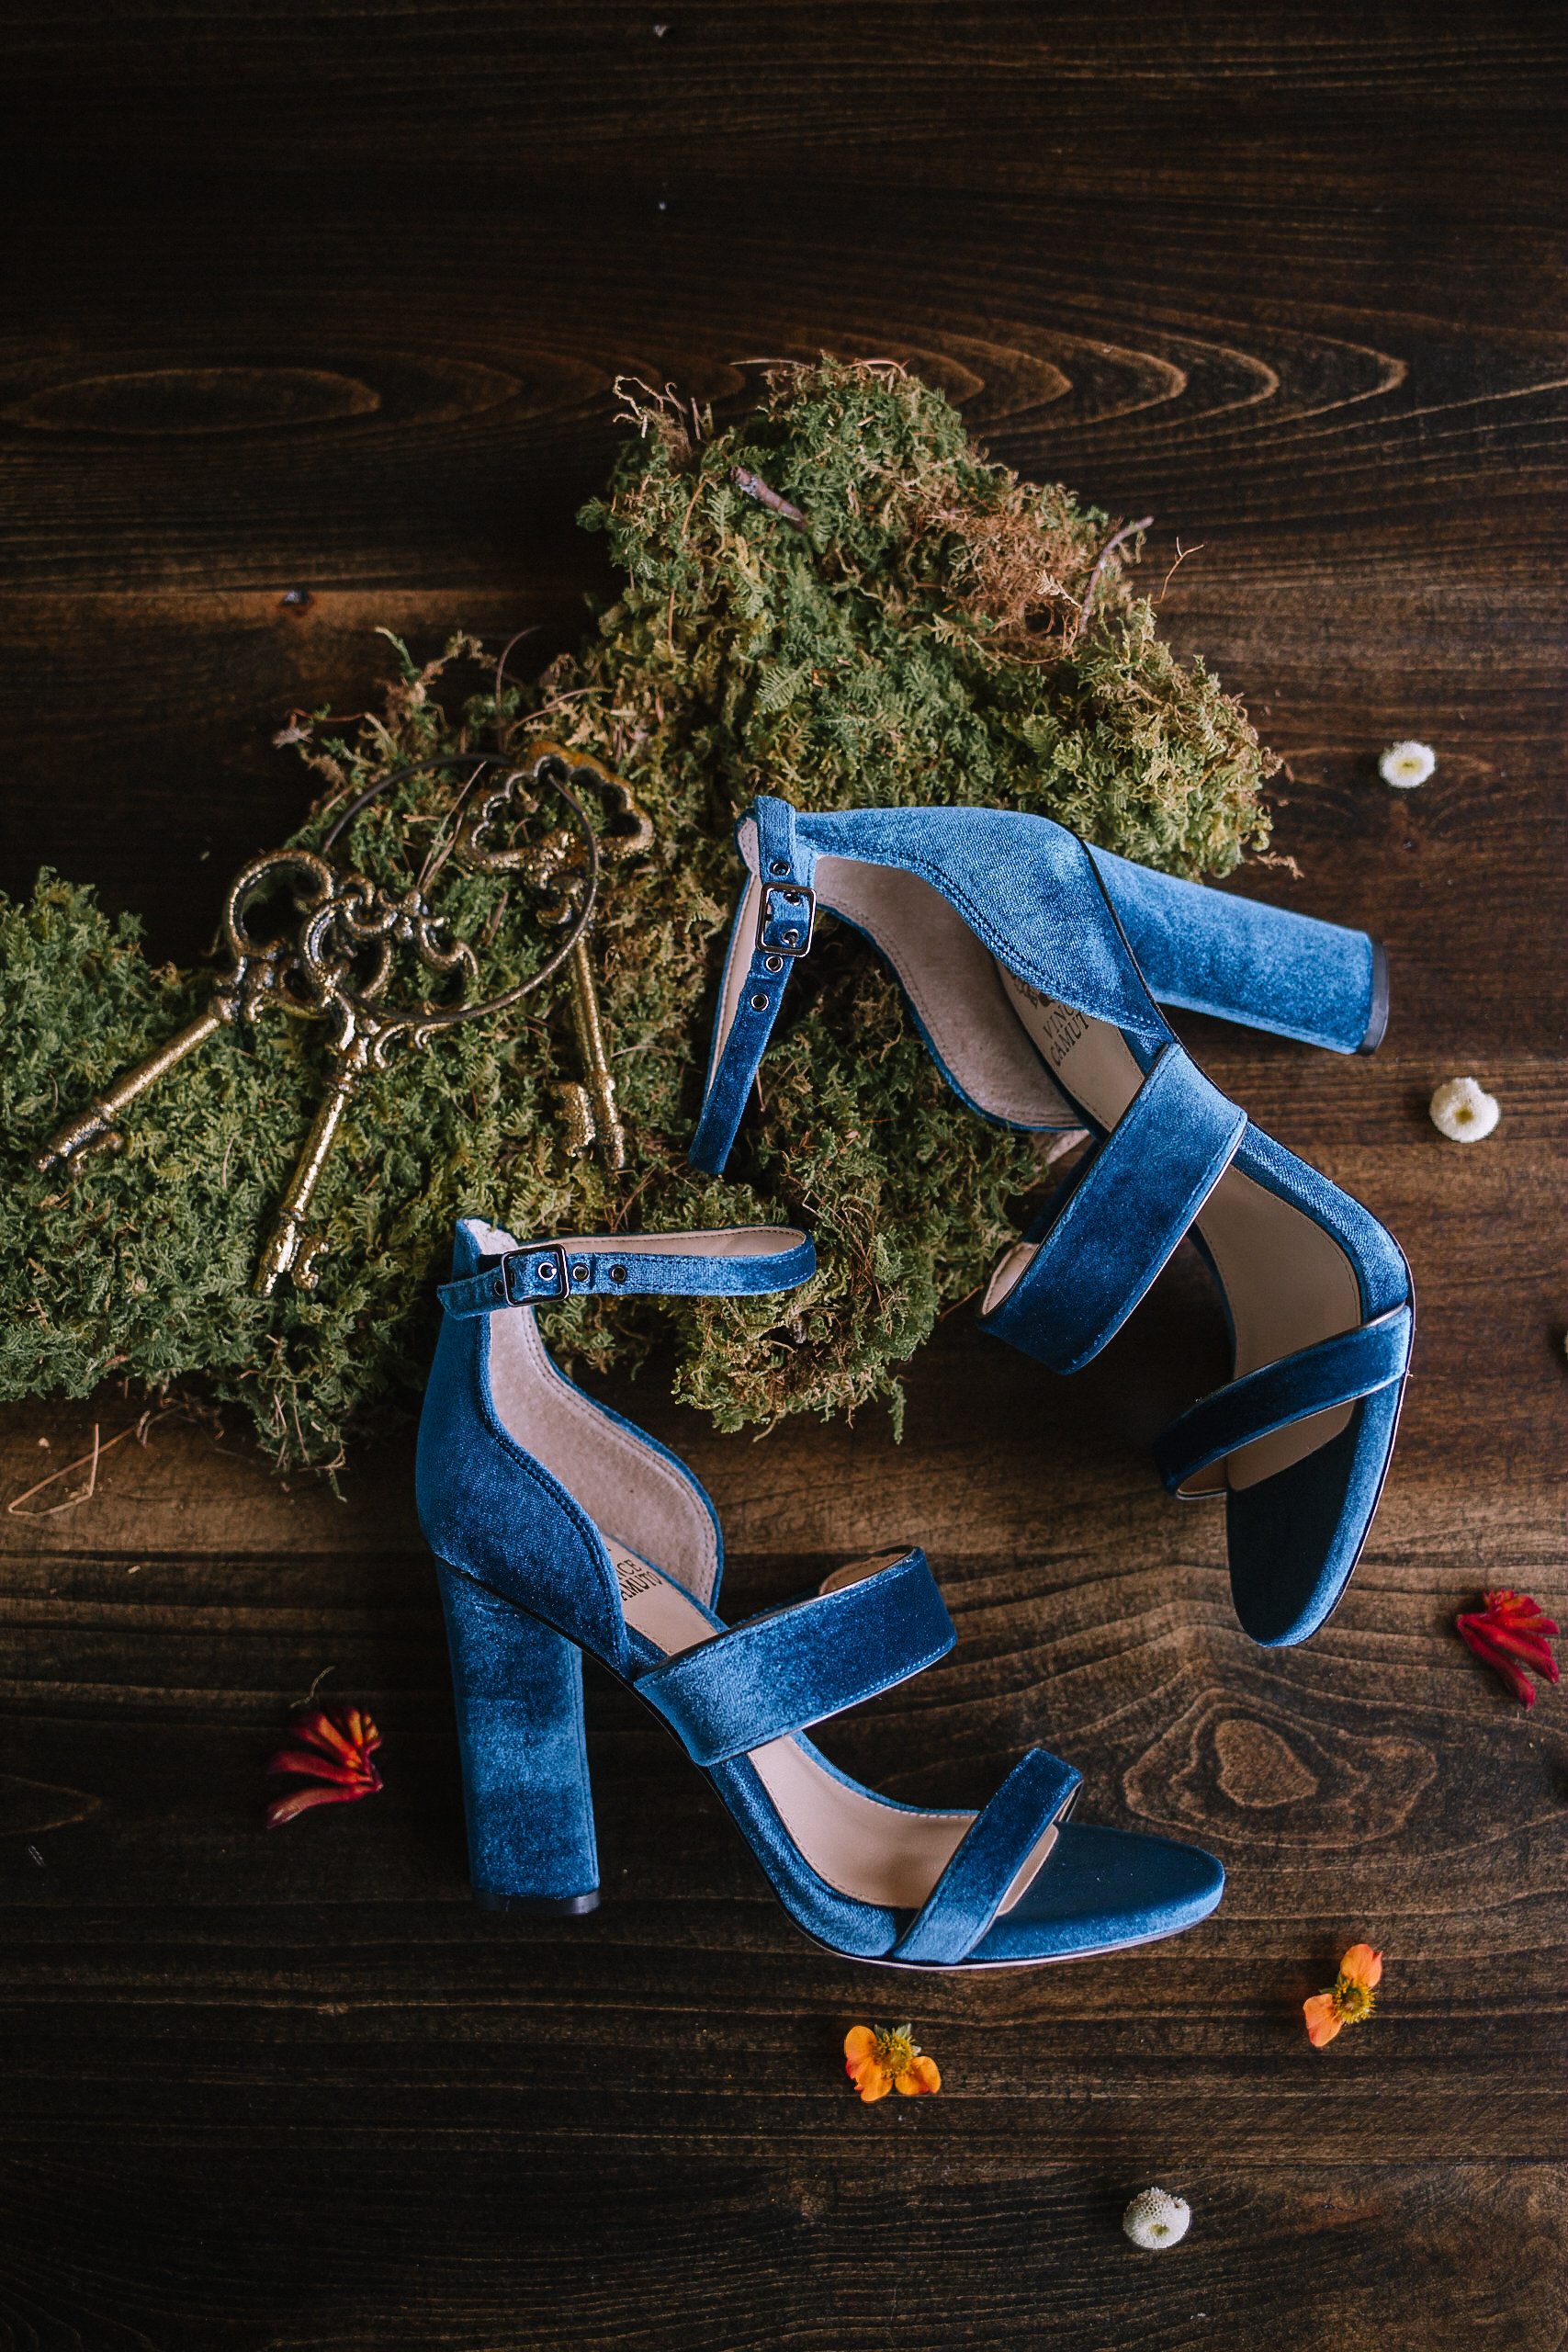 Blue velvet wedding shoes for fall vintage boho styled shoot designed by exhale events. Get inspired by these gorgeous wedding details at exhale-events.com!